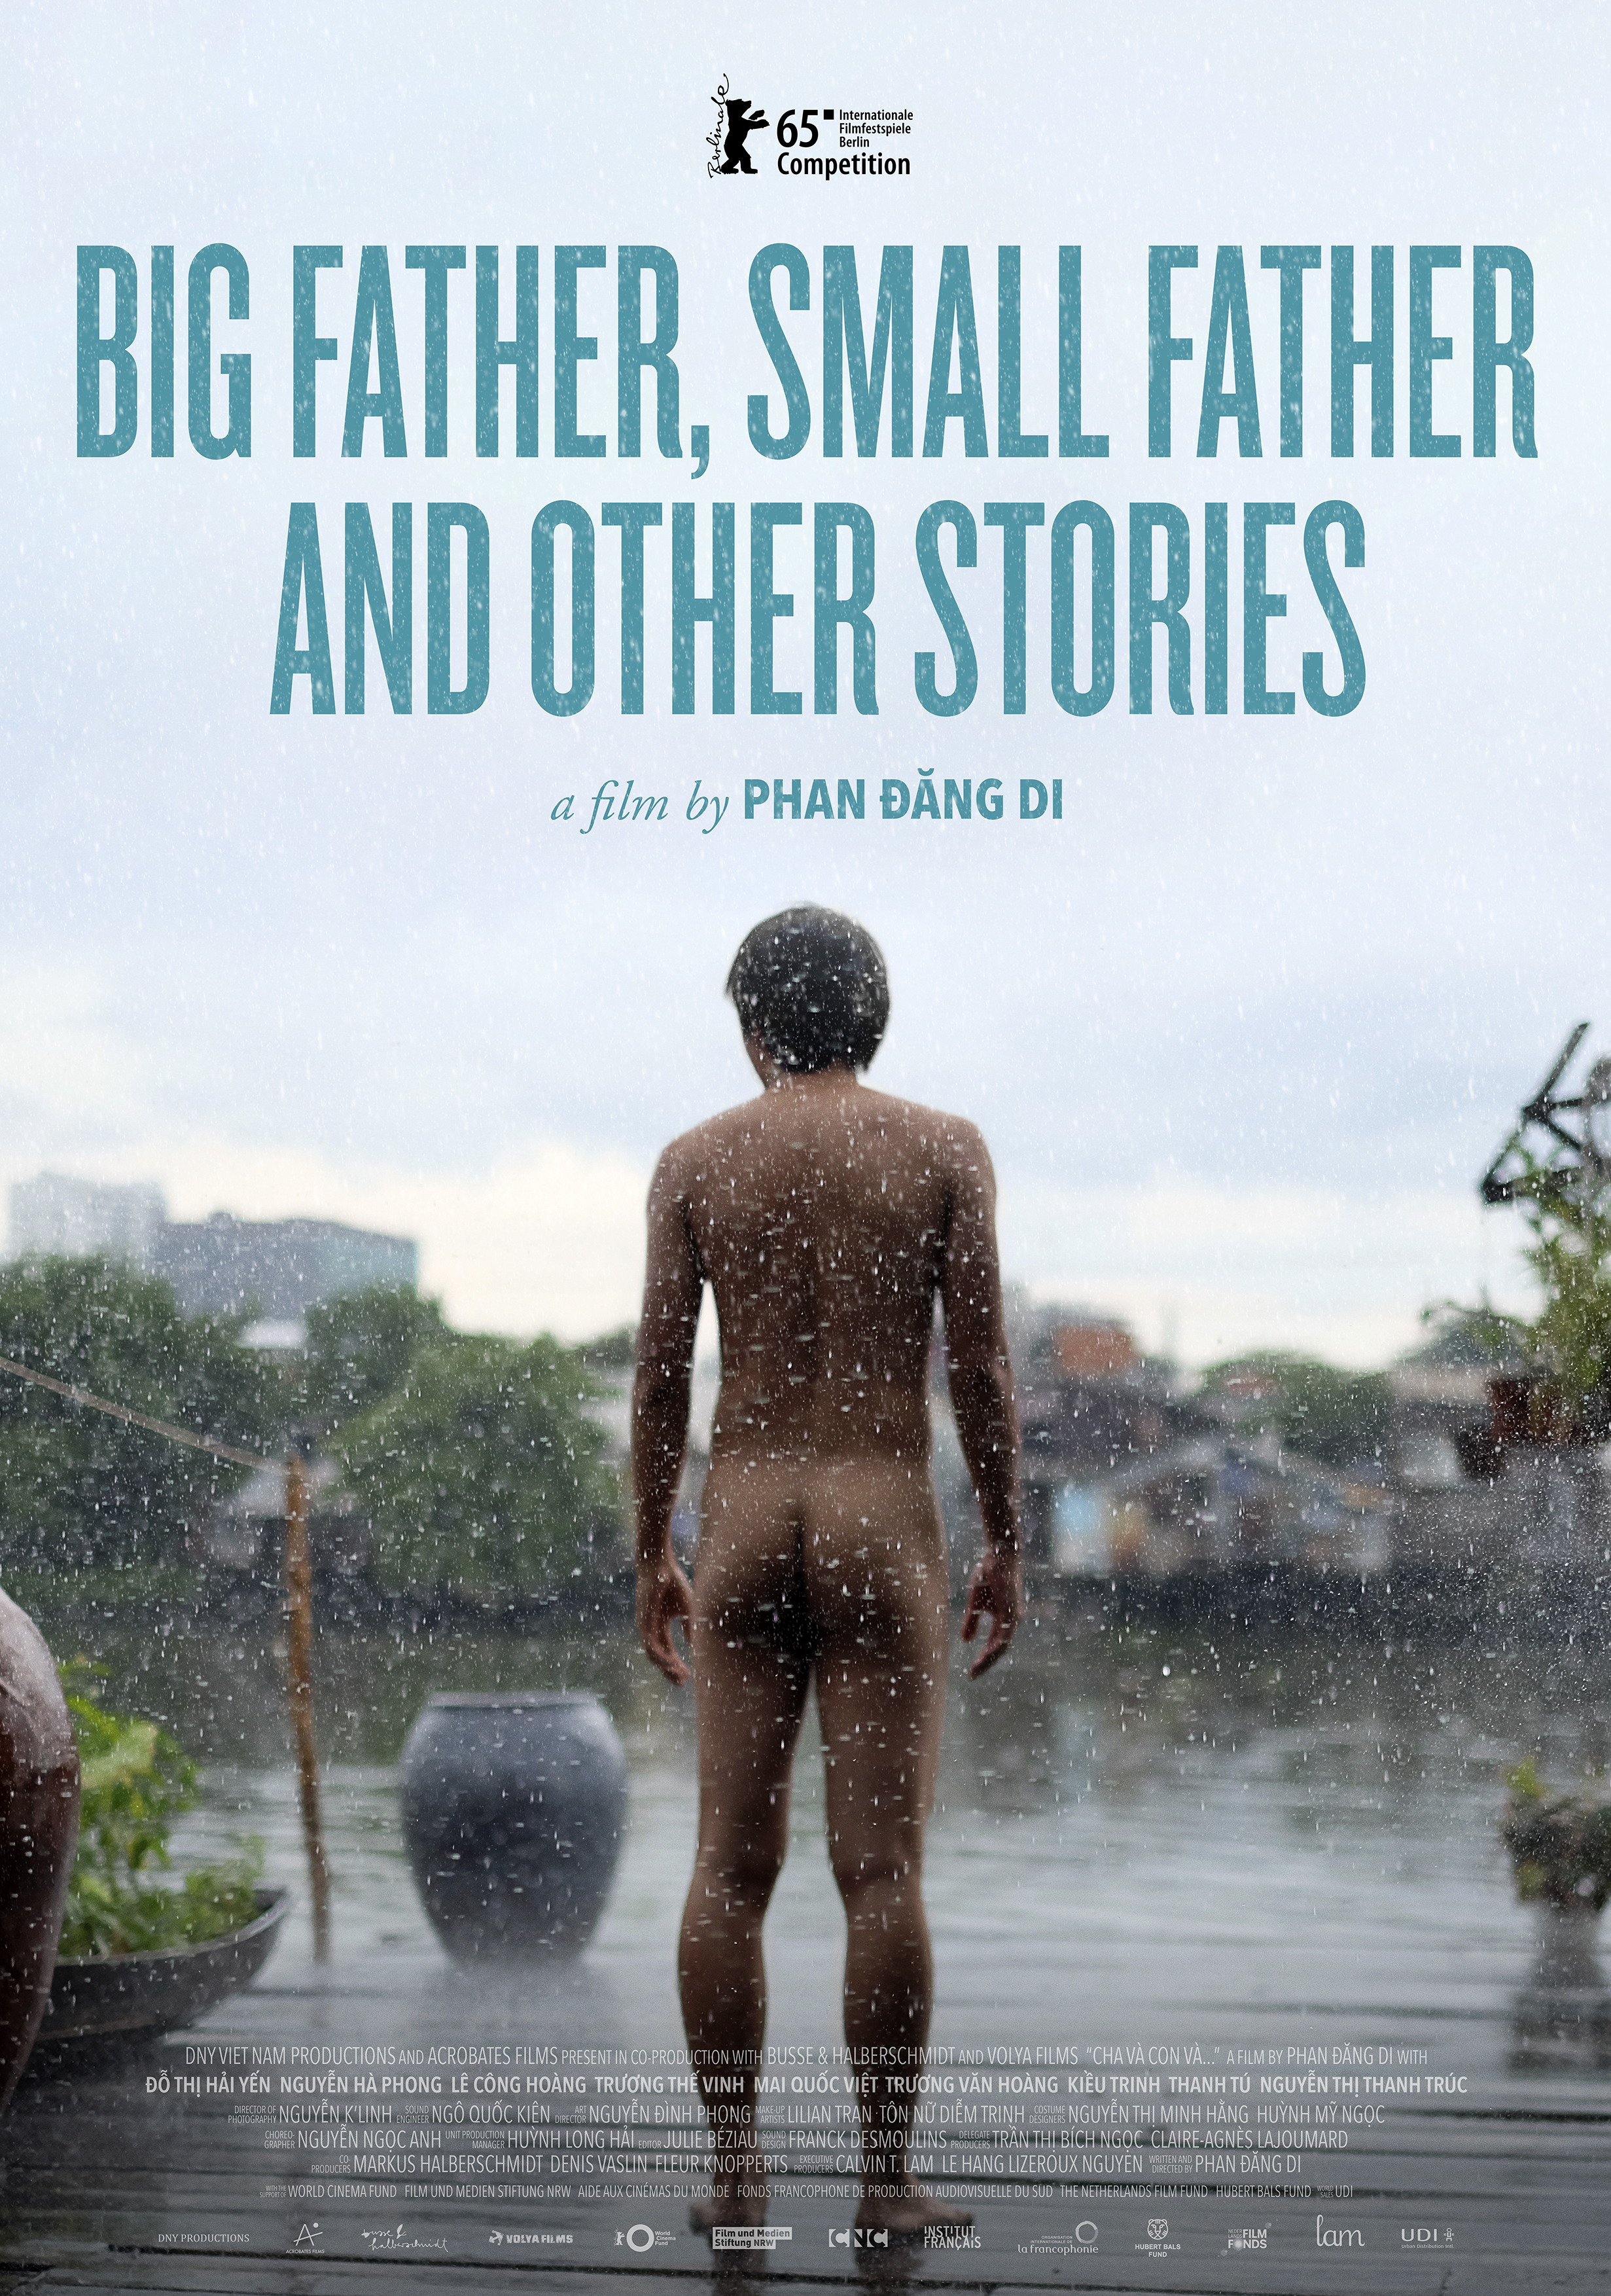 Big Father Small Father A4.jpg